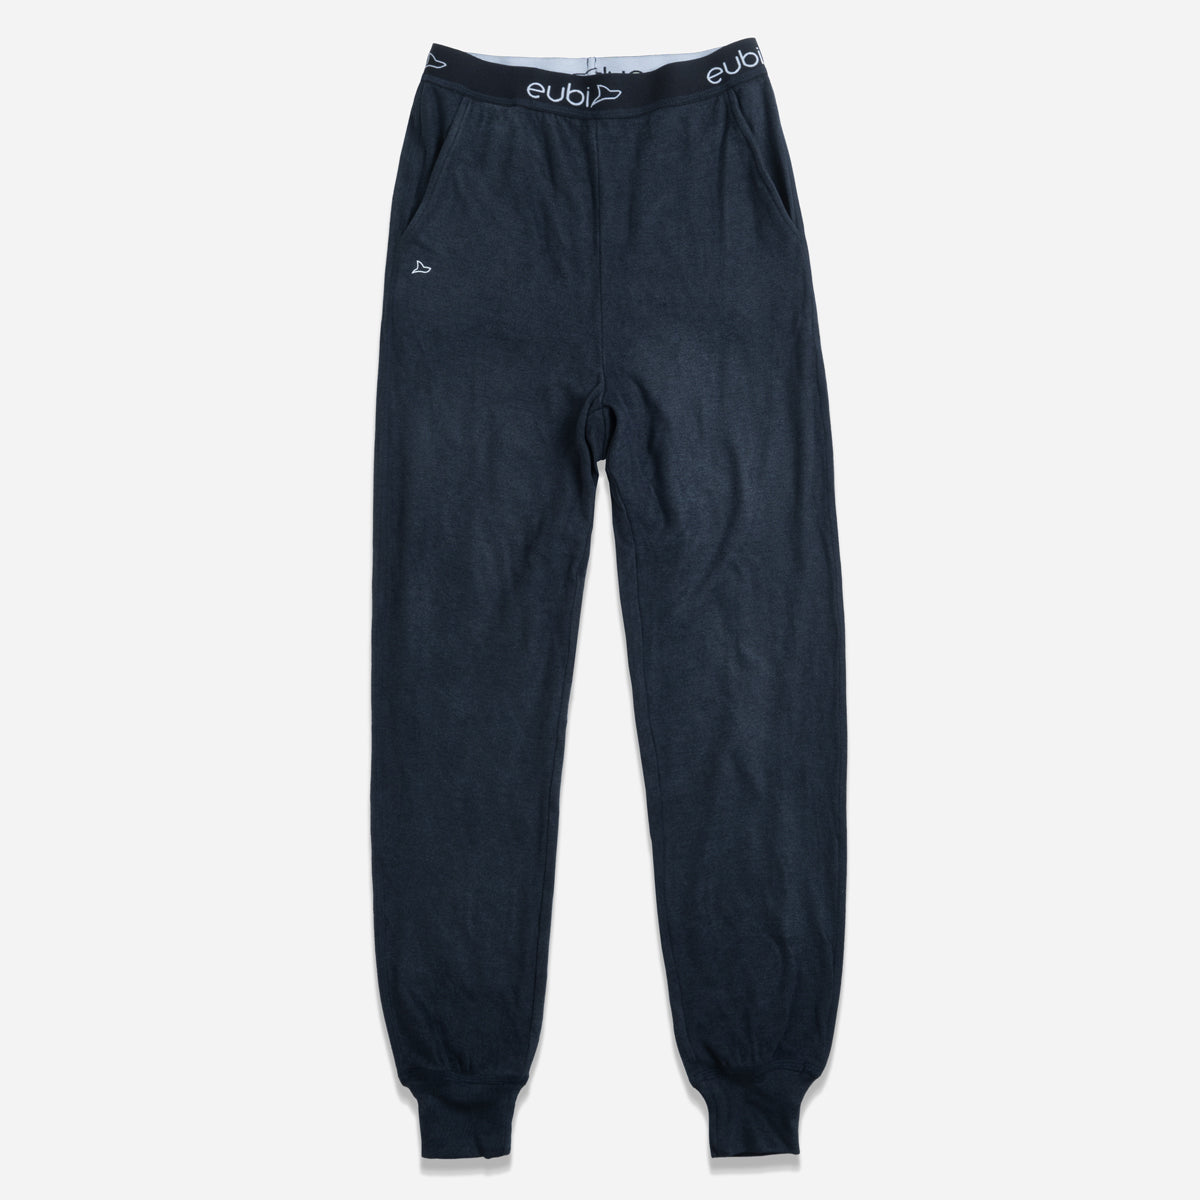 Navy Blue SoftAF ThermoTech Sleep Pants